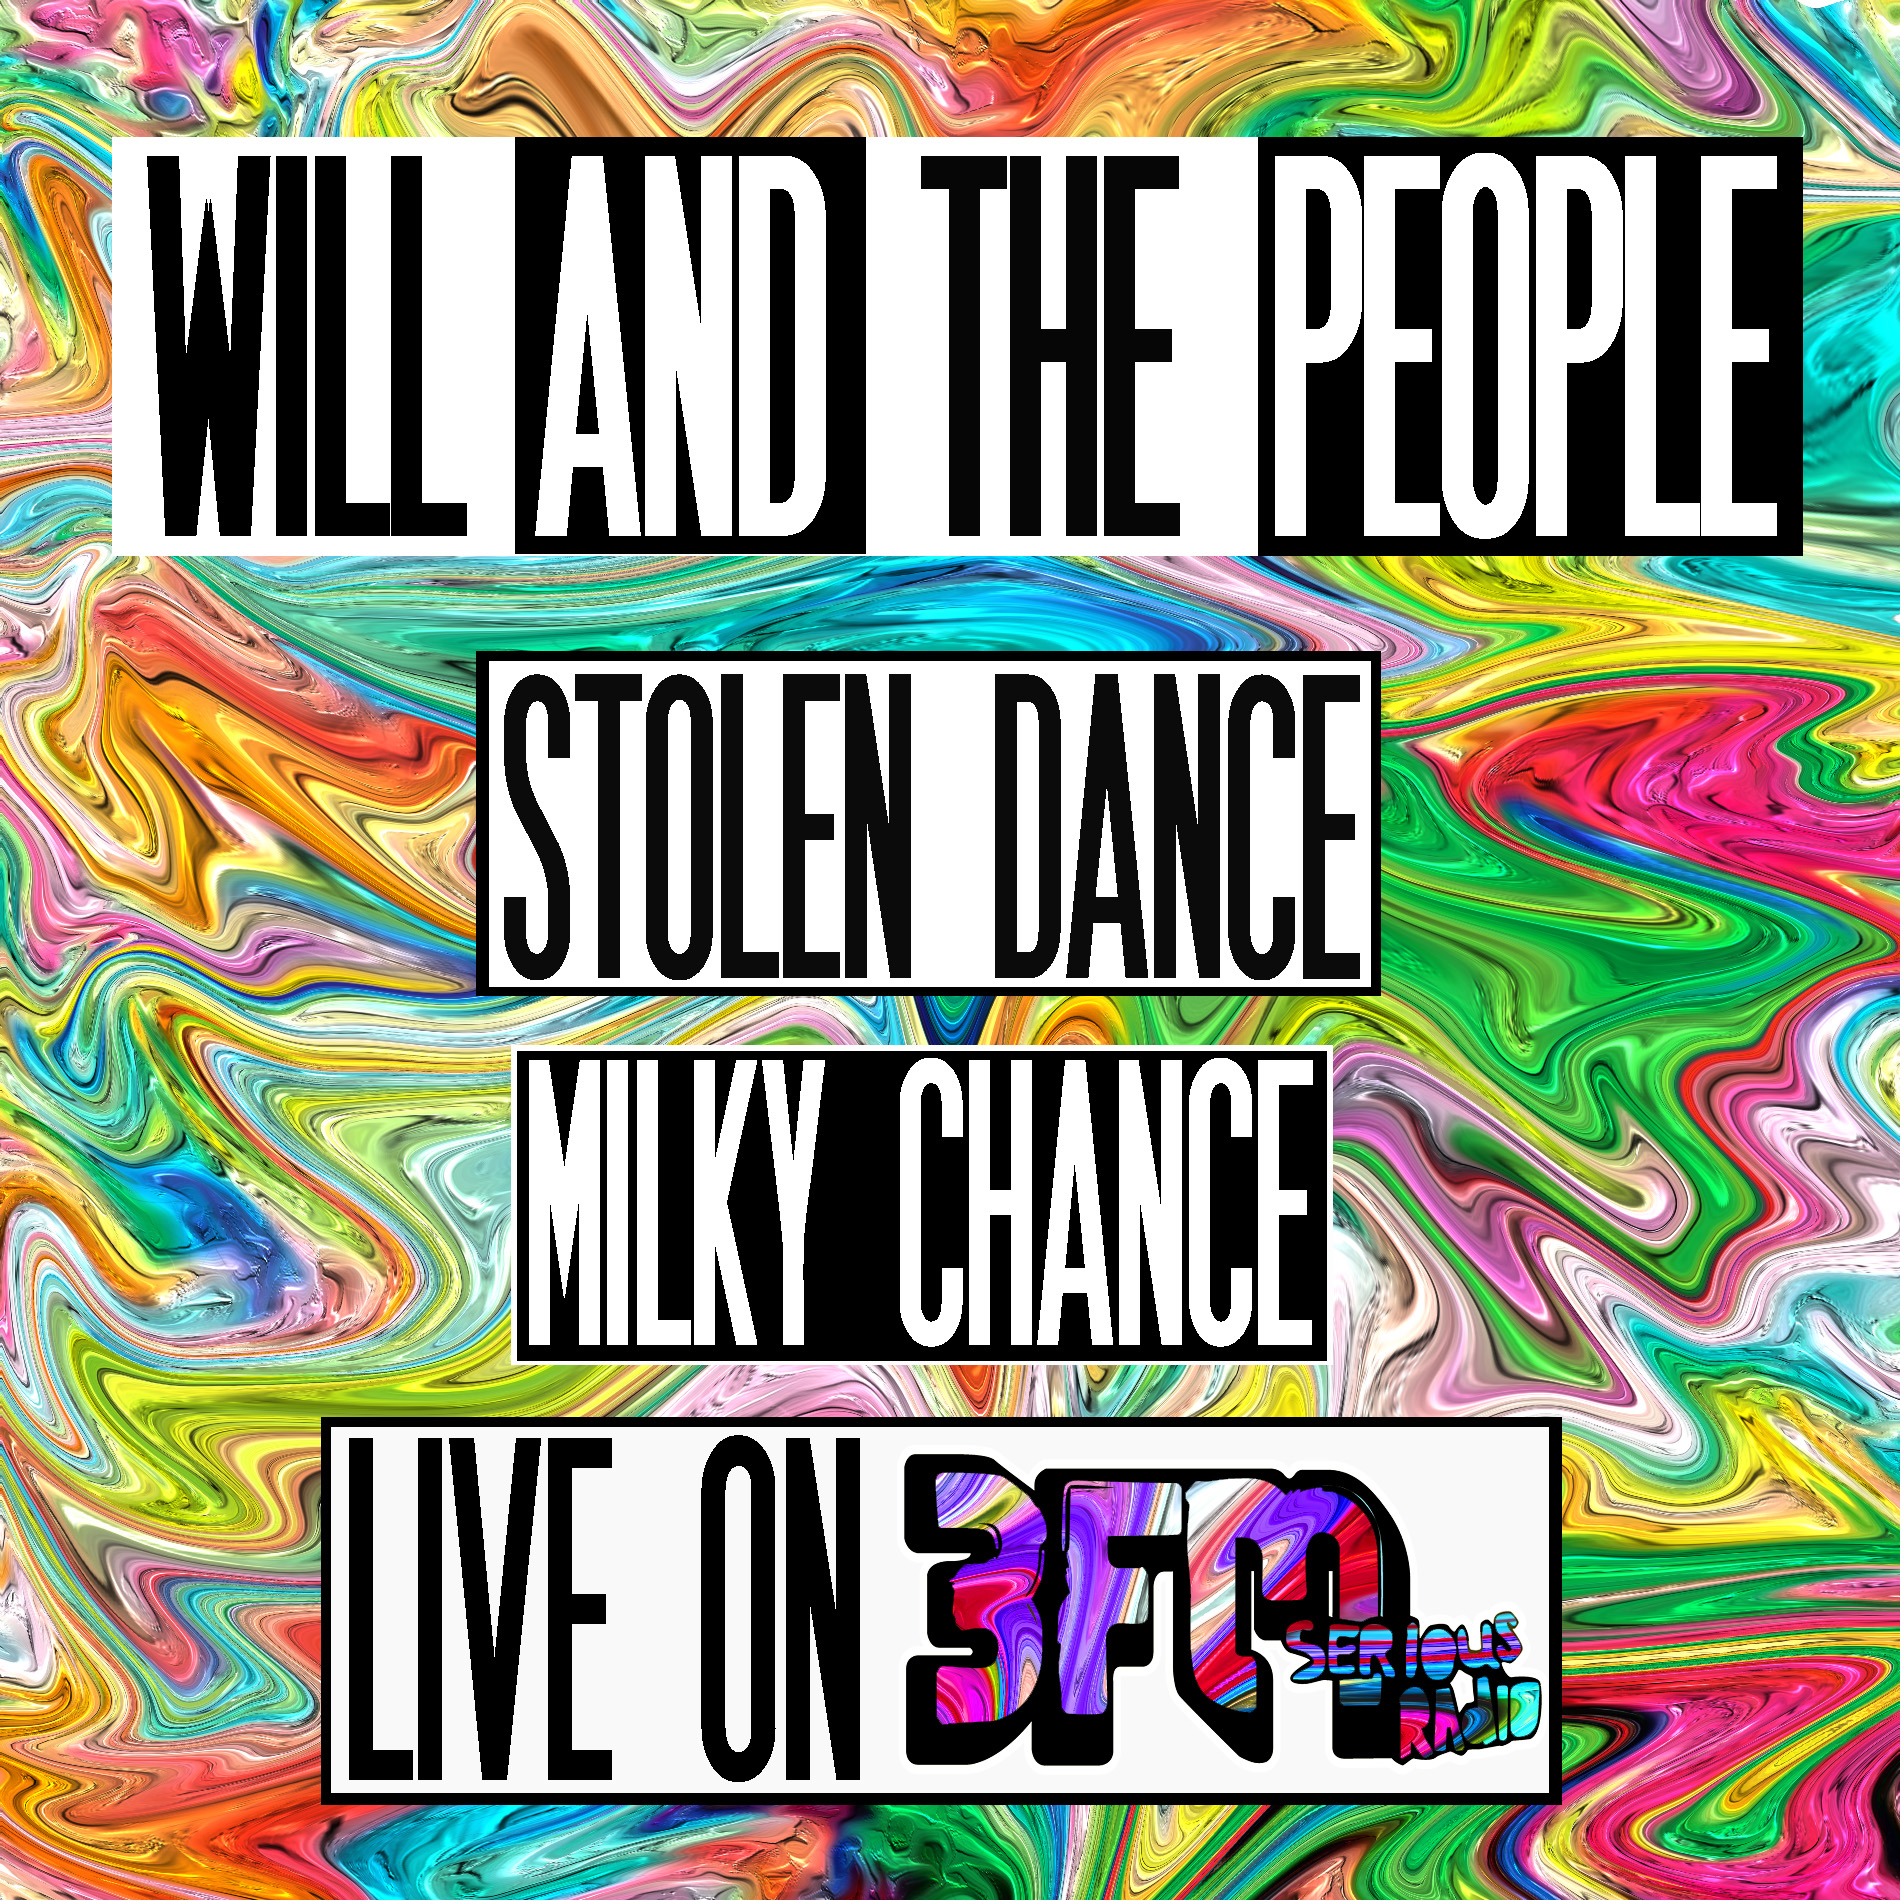 Stolen Dance - Milky Chance - Cover - Will and The People